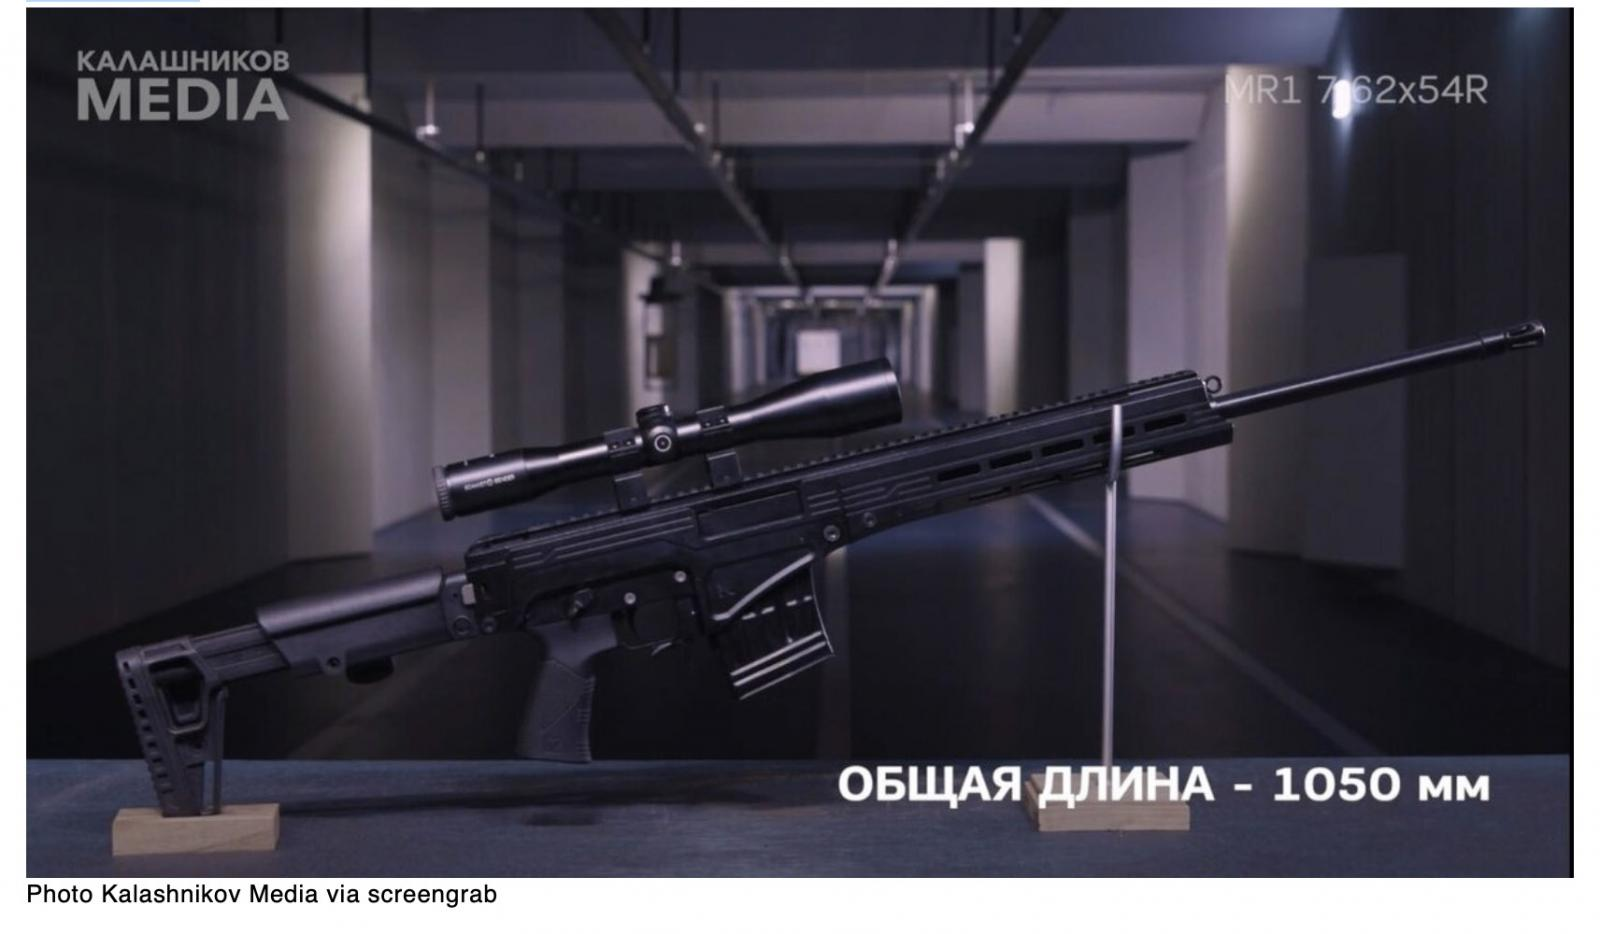 Kalashnikov's latest DMR now has a civilian version